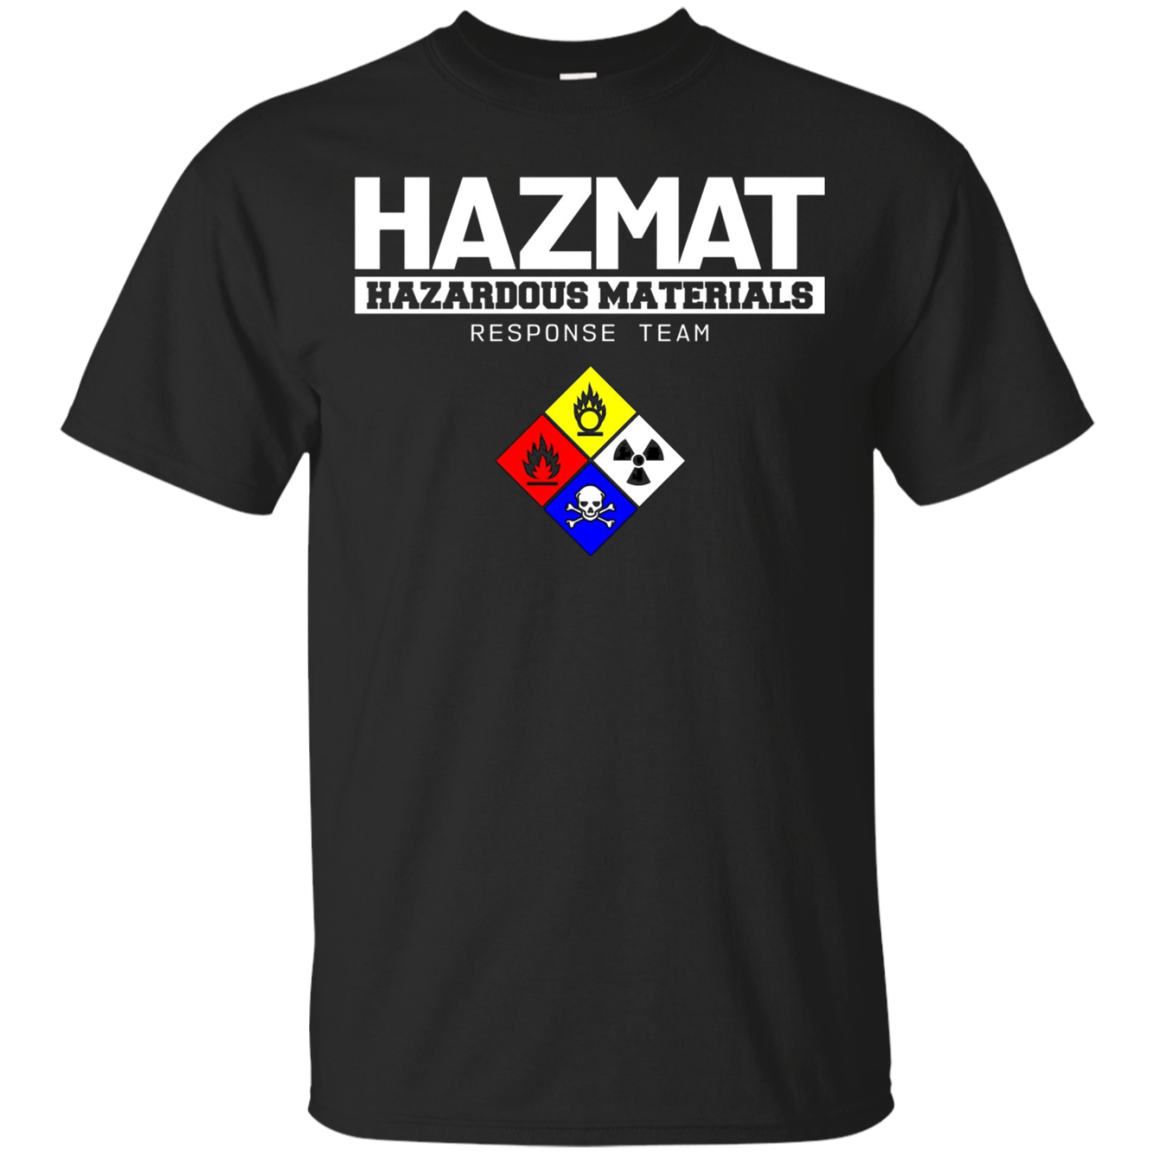 HAZMAT Hazardous Material Response Team Technician Shirt